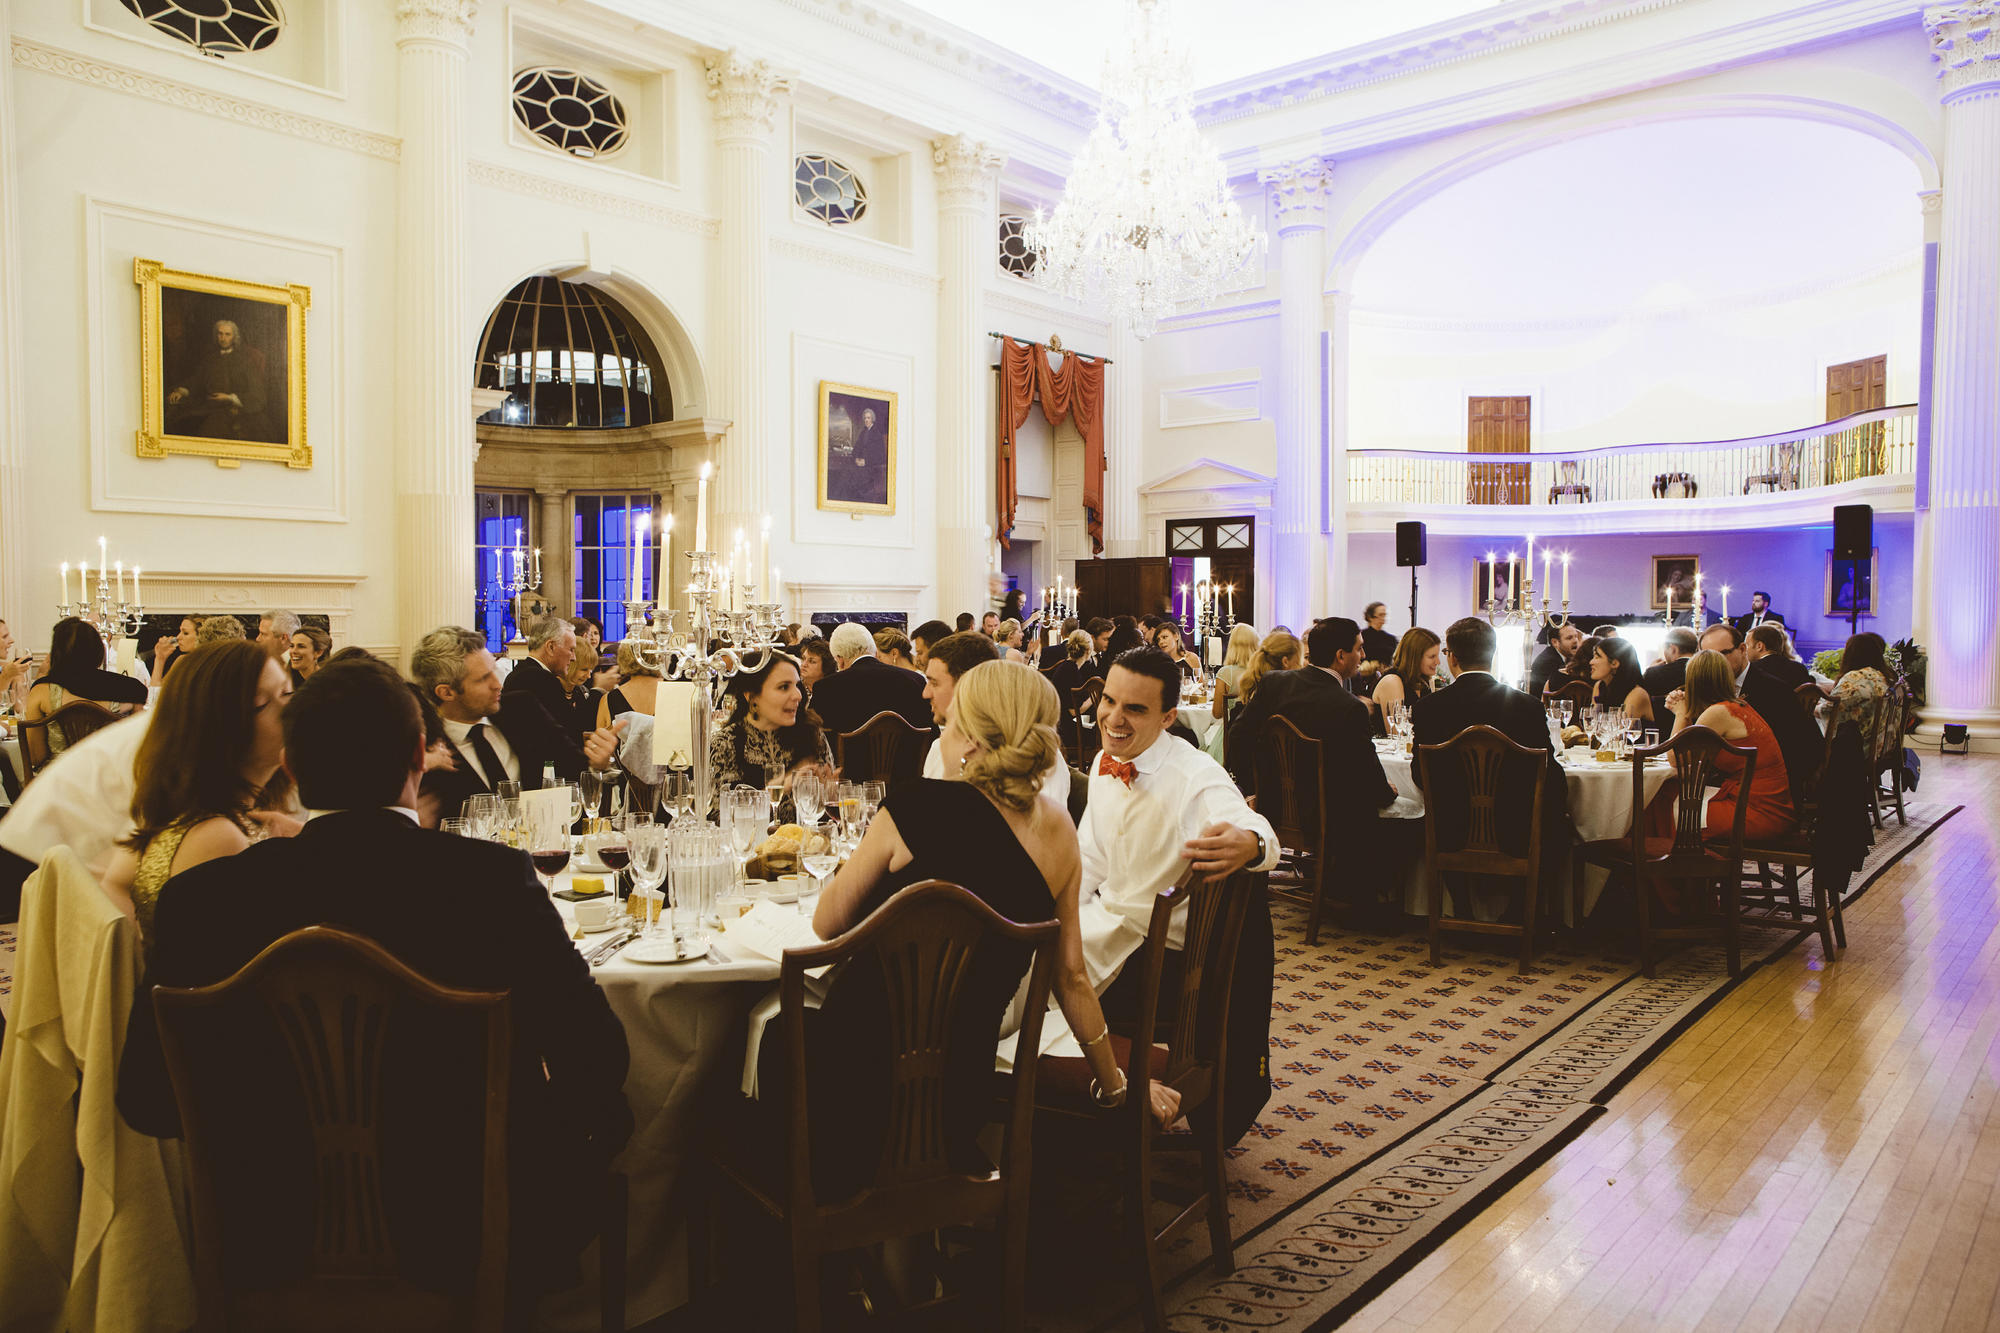 Image: Pump Room Dinner with People, A thing like that photography